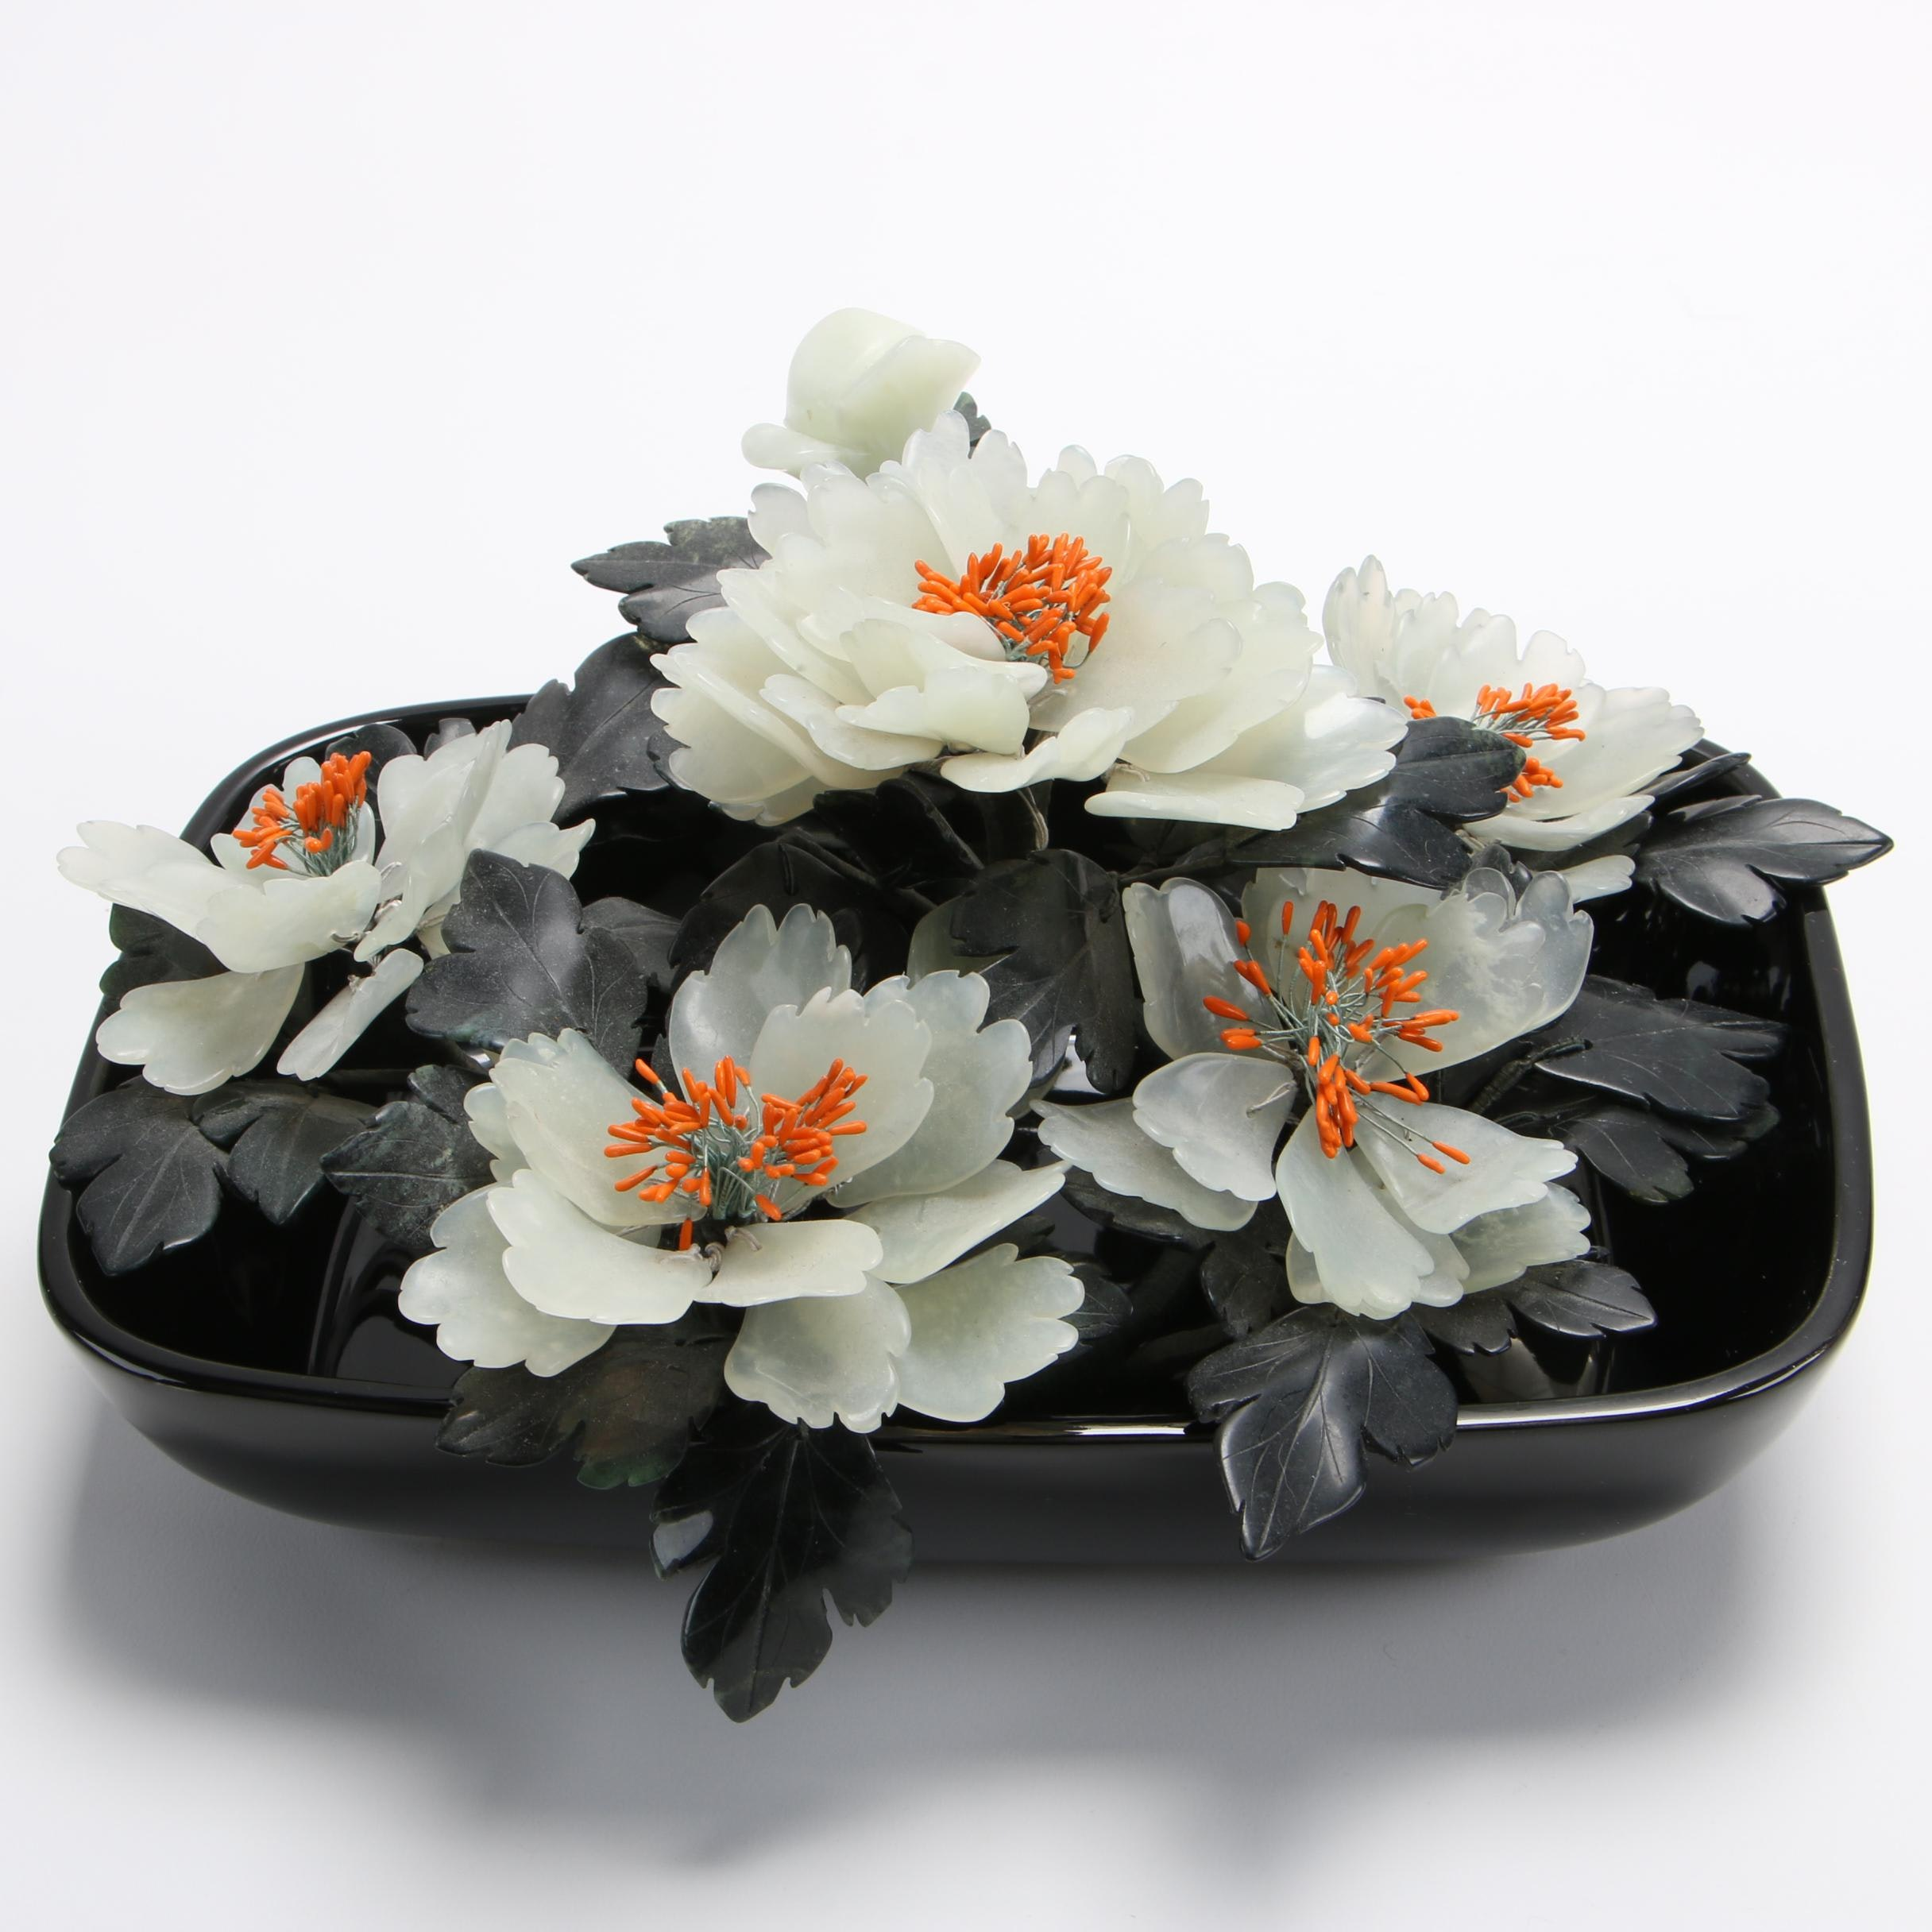 Chinese Bowenite and Nephrite Floral Arrangement in Inarco Bowl